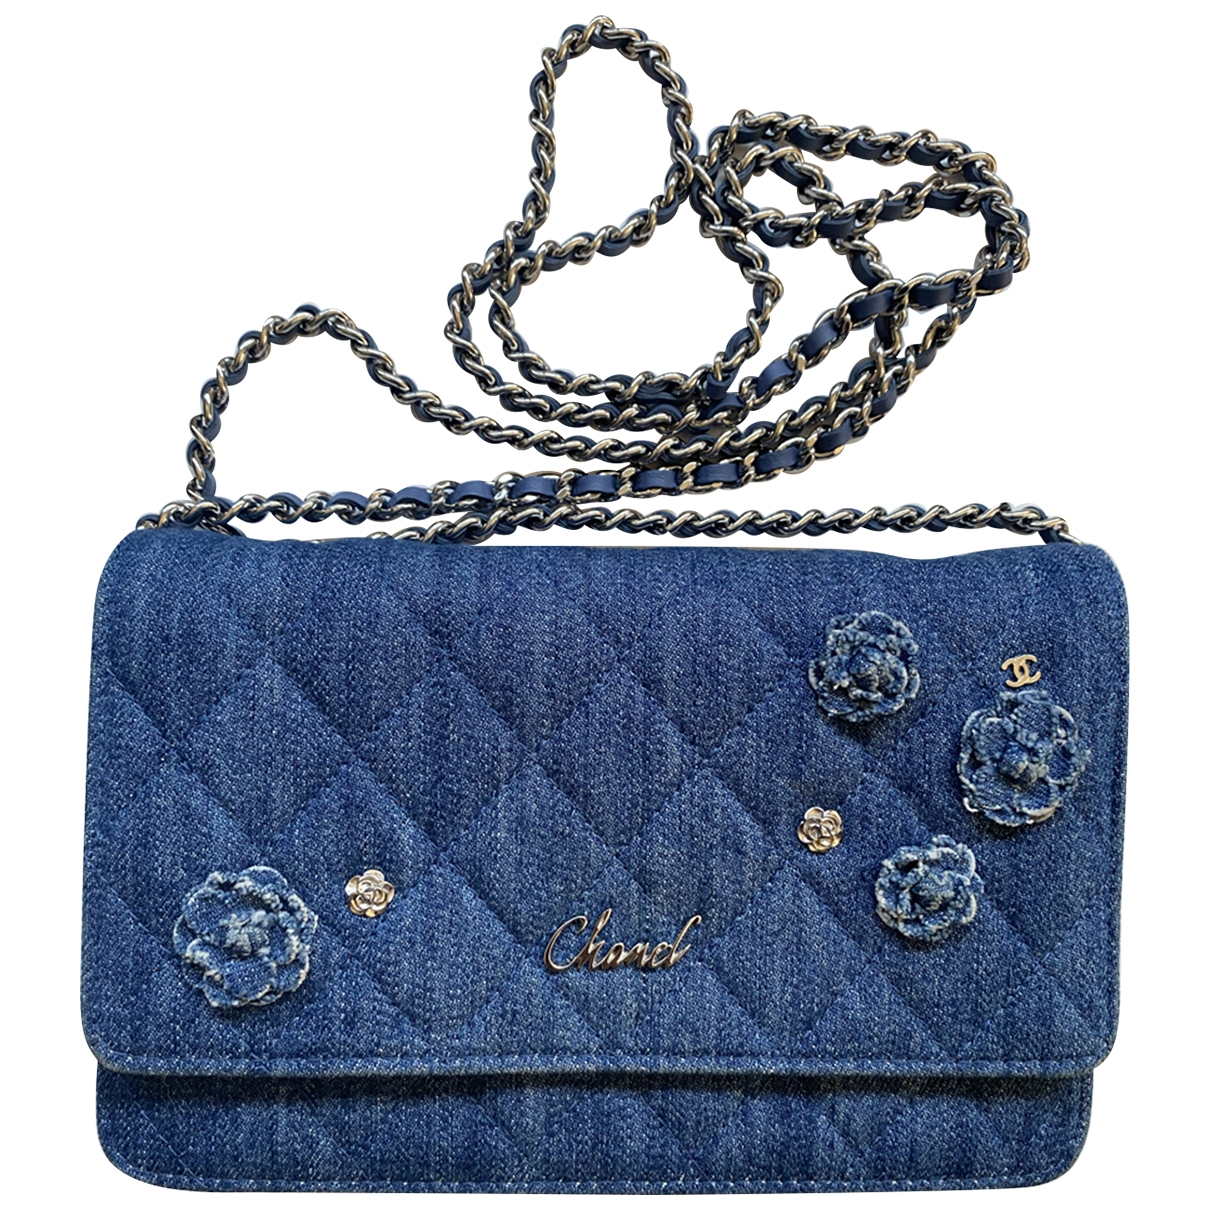 Bolsos clutch Wallet on Chain en Denim - Vaquero Azul Chanel